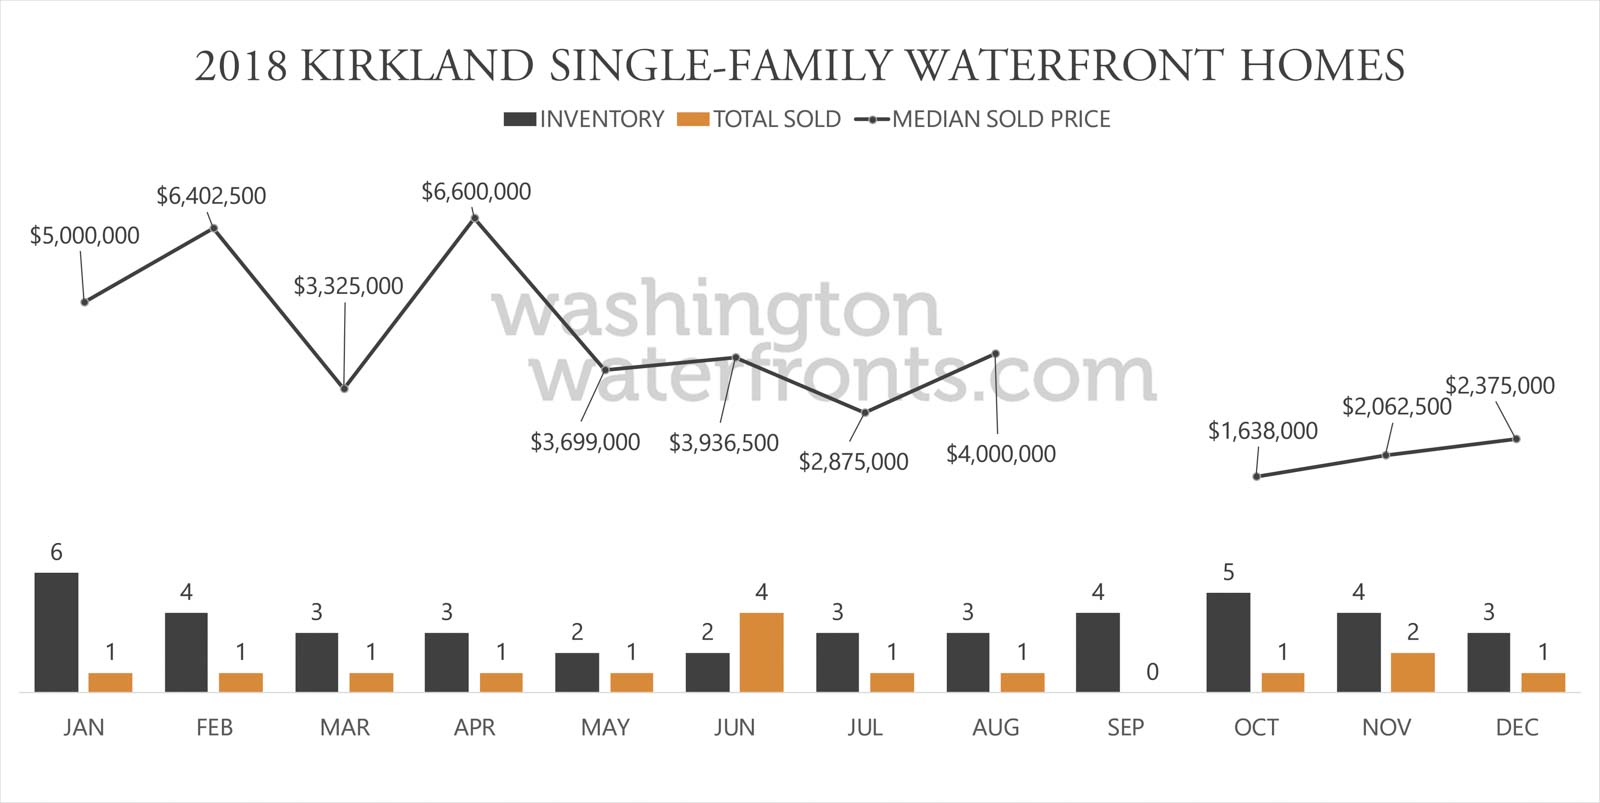 Kirkland Waterfront Inventory